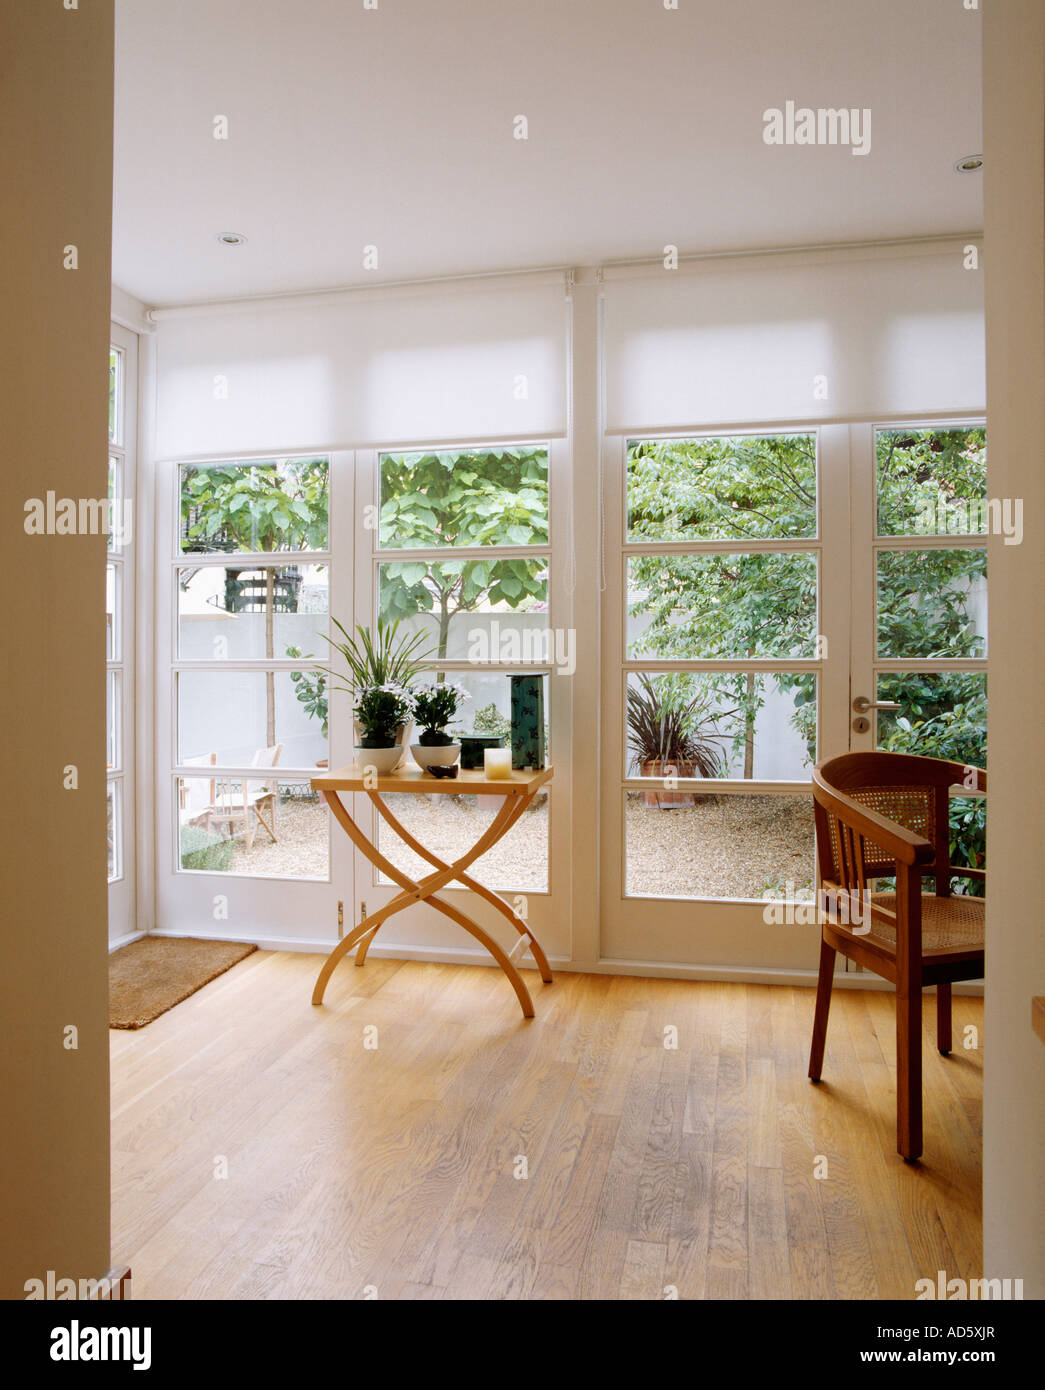 Wooden Flooring In Modern White Dining Room Extension With View Of Courtyard Garden Through Glass Doors Blinds